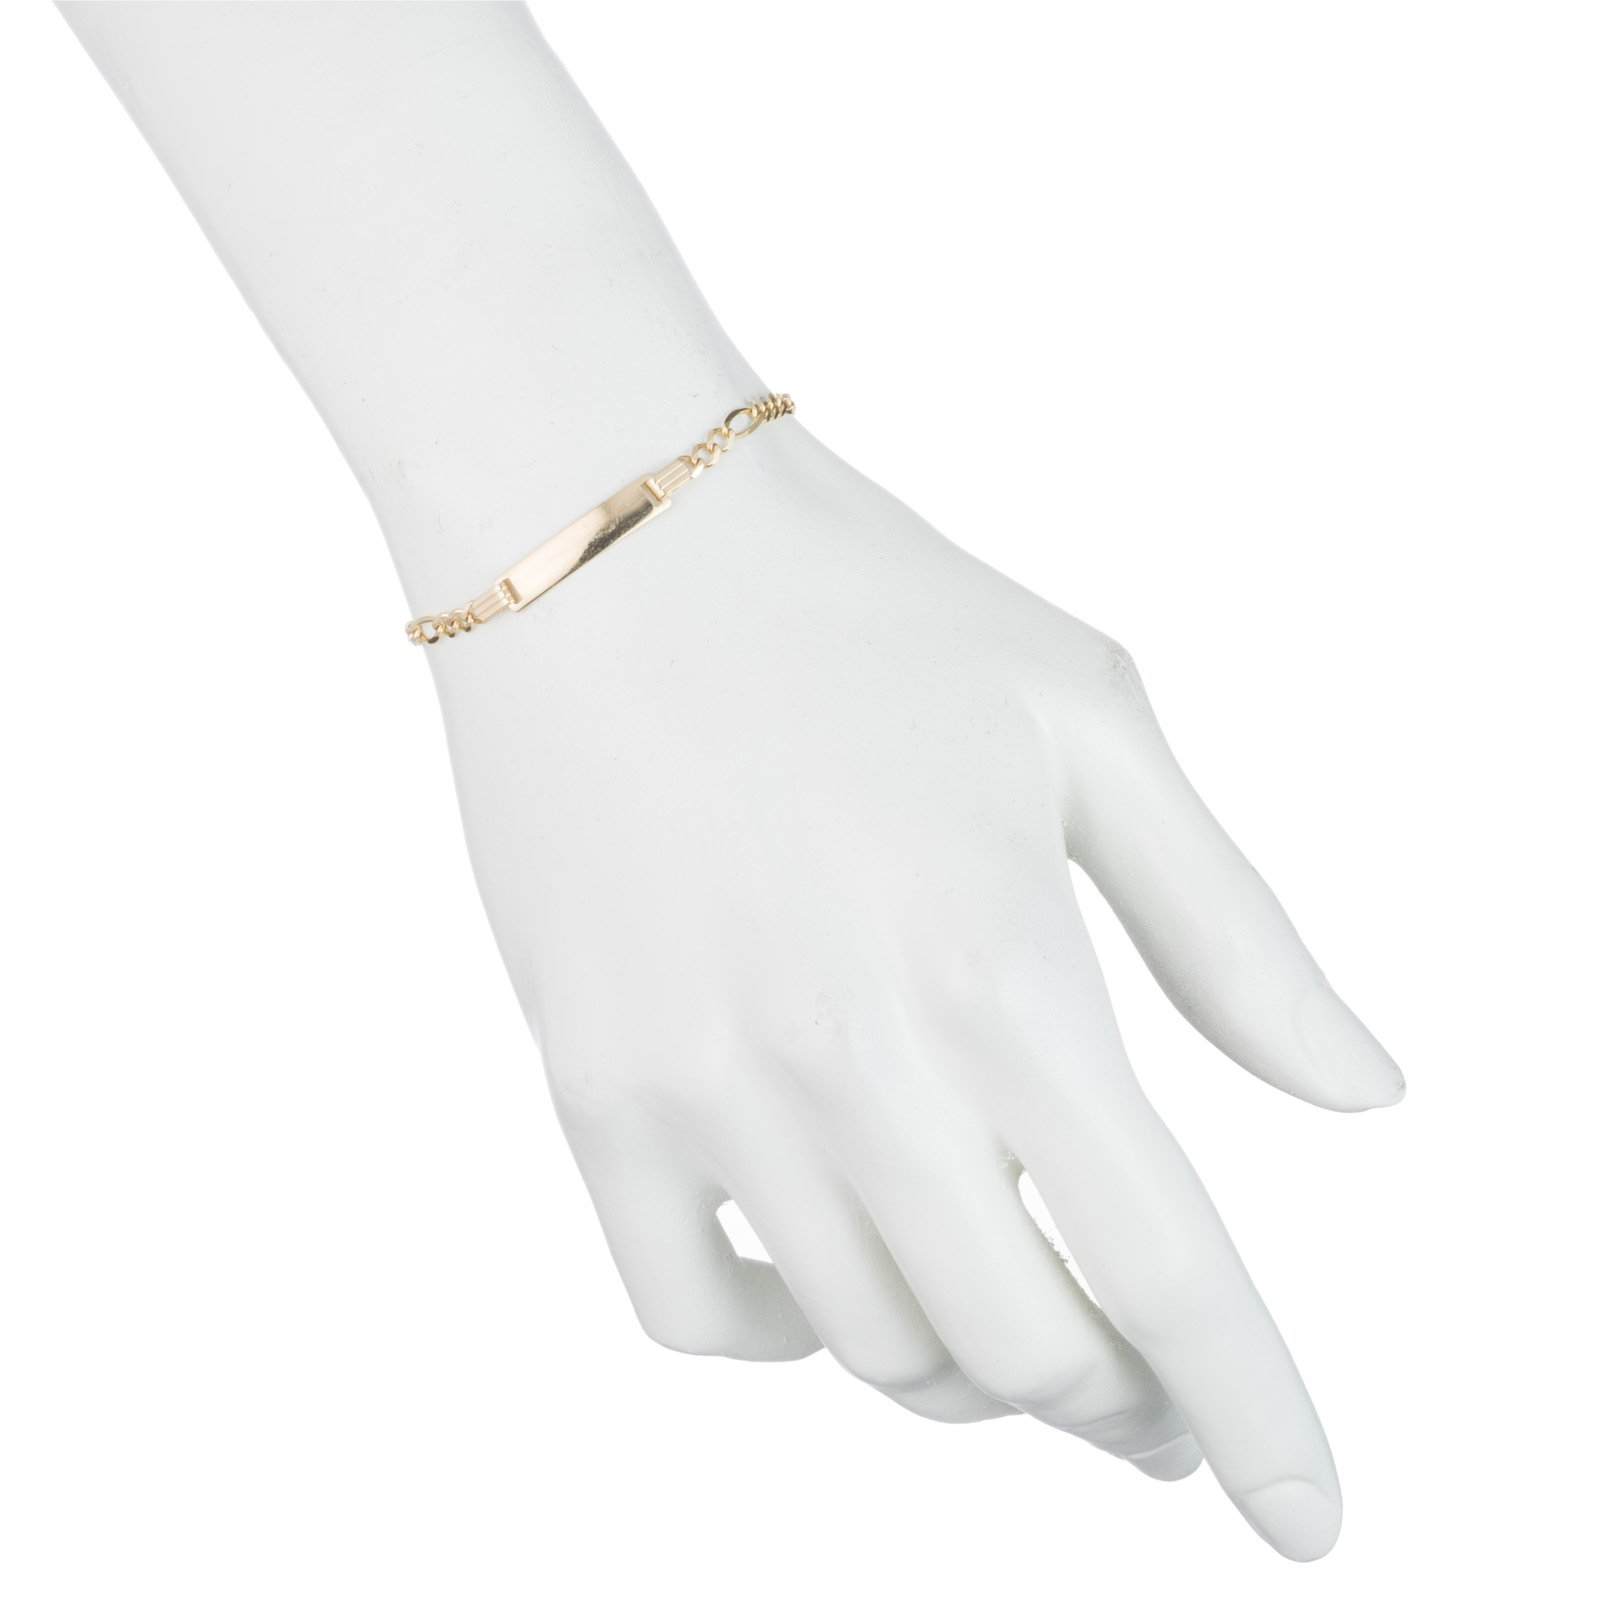 10k Yellow Gold Figaro ID Bracelet for Children, 3.5mm, 6 Inch by Glad Gold (Image #2)